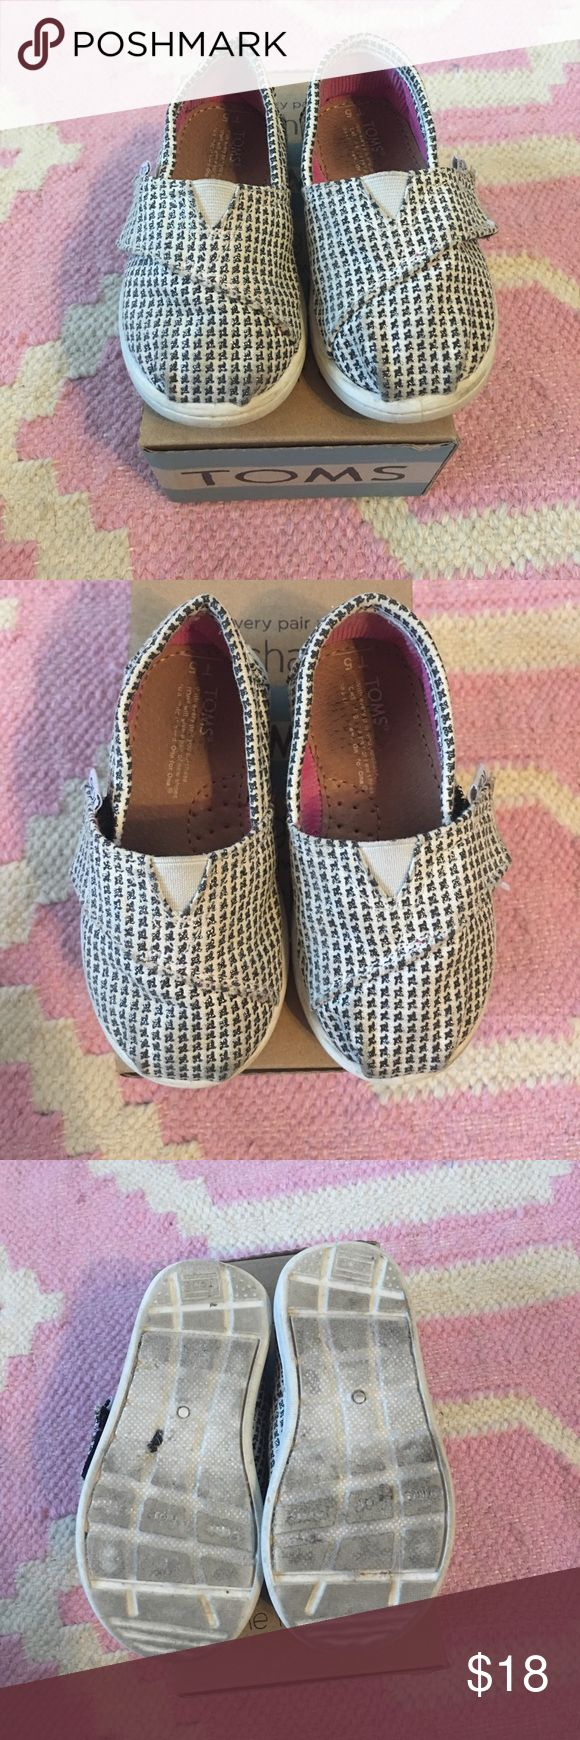 Tiny Toms - silver herringbone - 5 toddler Classic Tiny Toms - sliver (sparkly) herringbone- size 5 toddler. Gently used with some slight signs of wear on toes Toms Shoes